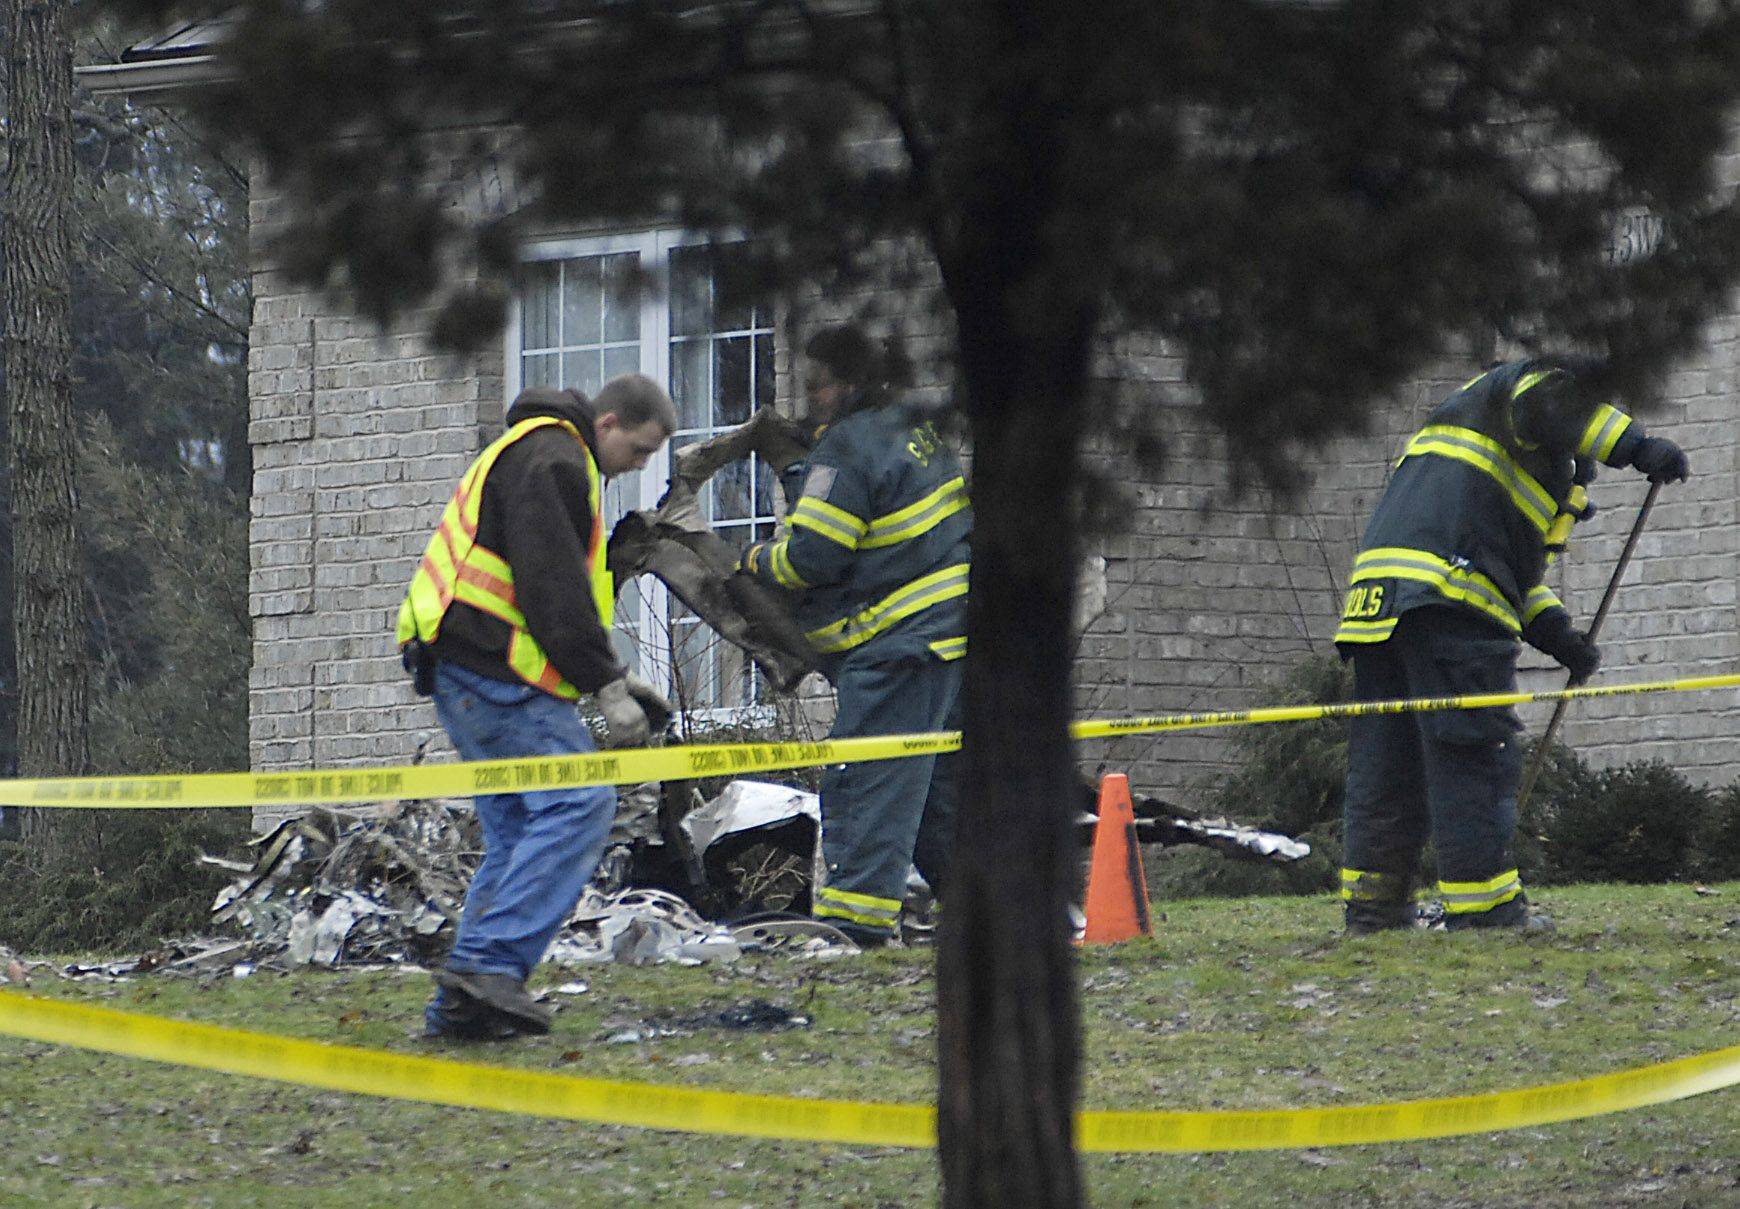 Pieces of wreckage are gathered from a yard at Old Oaks Road near Route 47 in Sugar Grove following a plane crash in January 2010. The pilot and his passenger were killed in the crash. The homeowners have sued the pilot's estate and his Florida employer, which owned the plane.